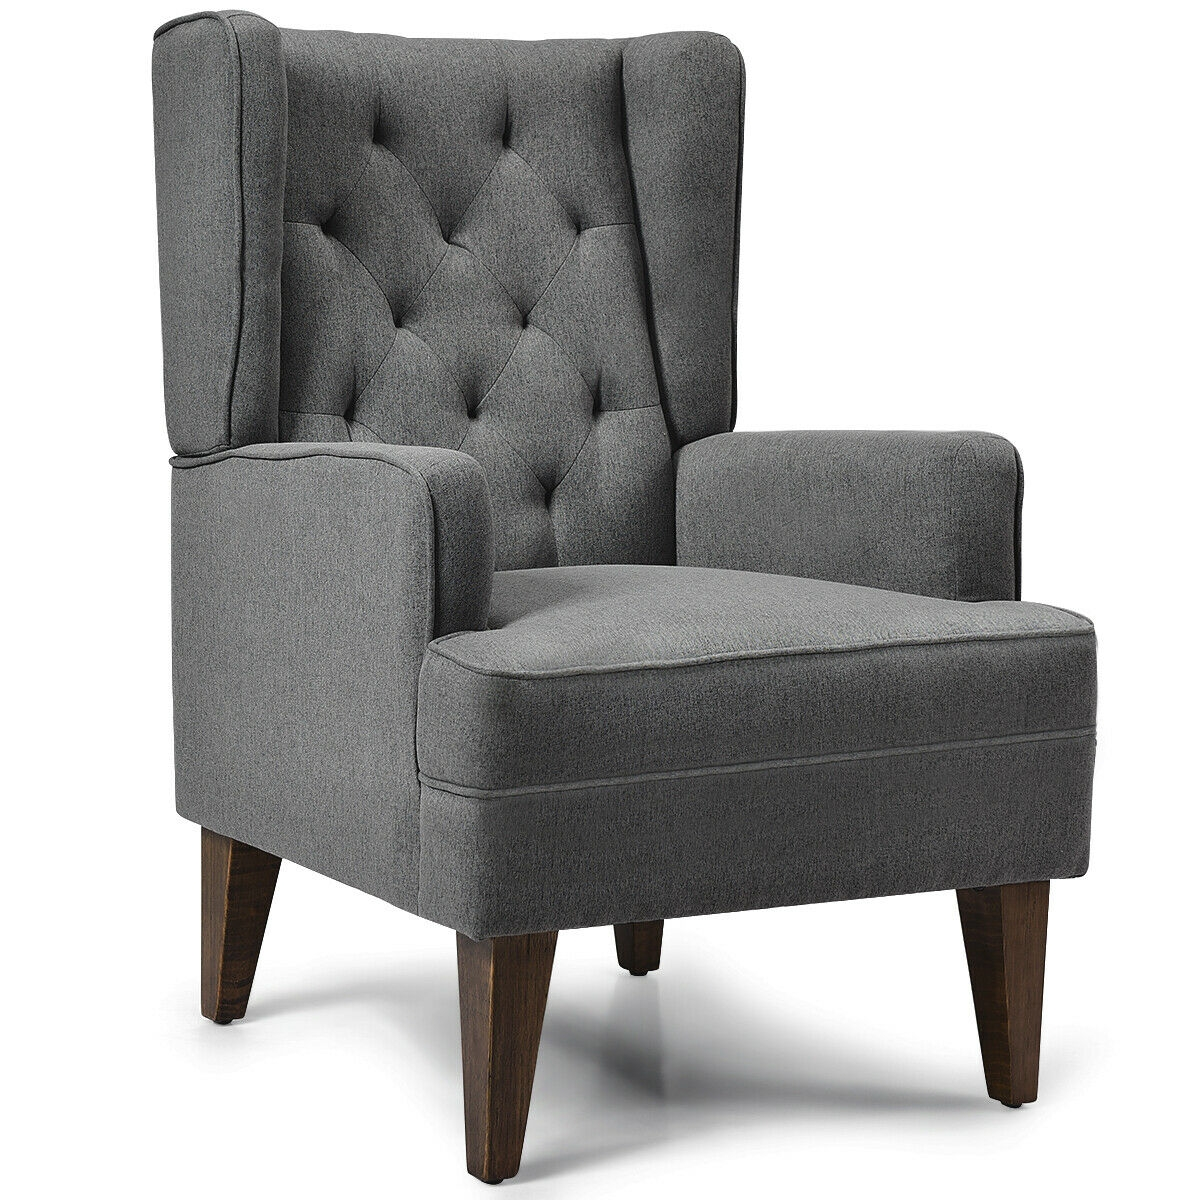 2 in 1 Tufted Rocking Chair